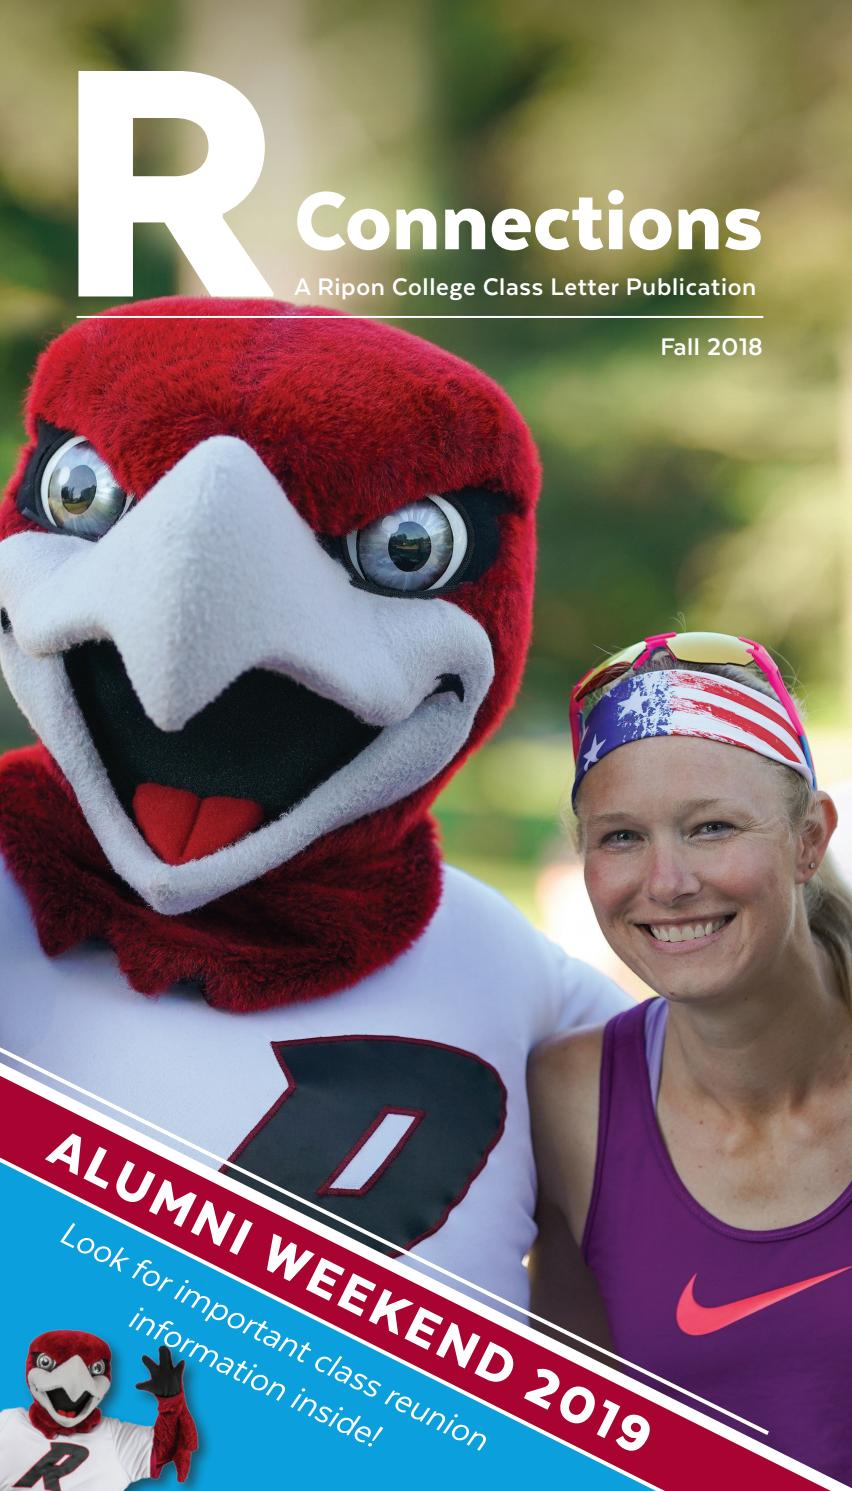 cf4575bd498 Ripon College R Connections Fall 2018 by Ripon College - issuu